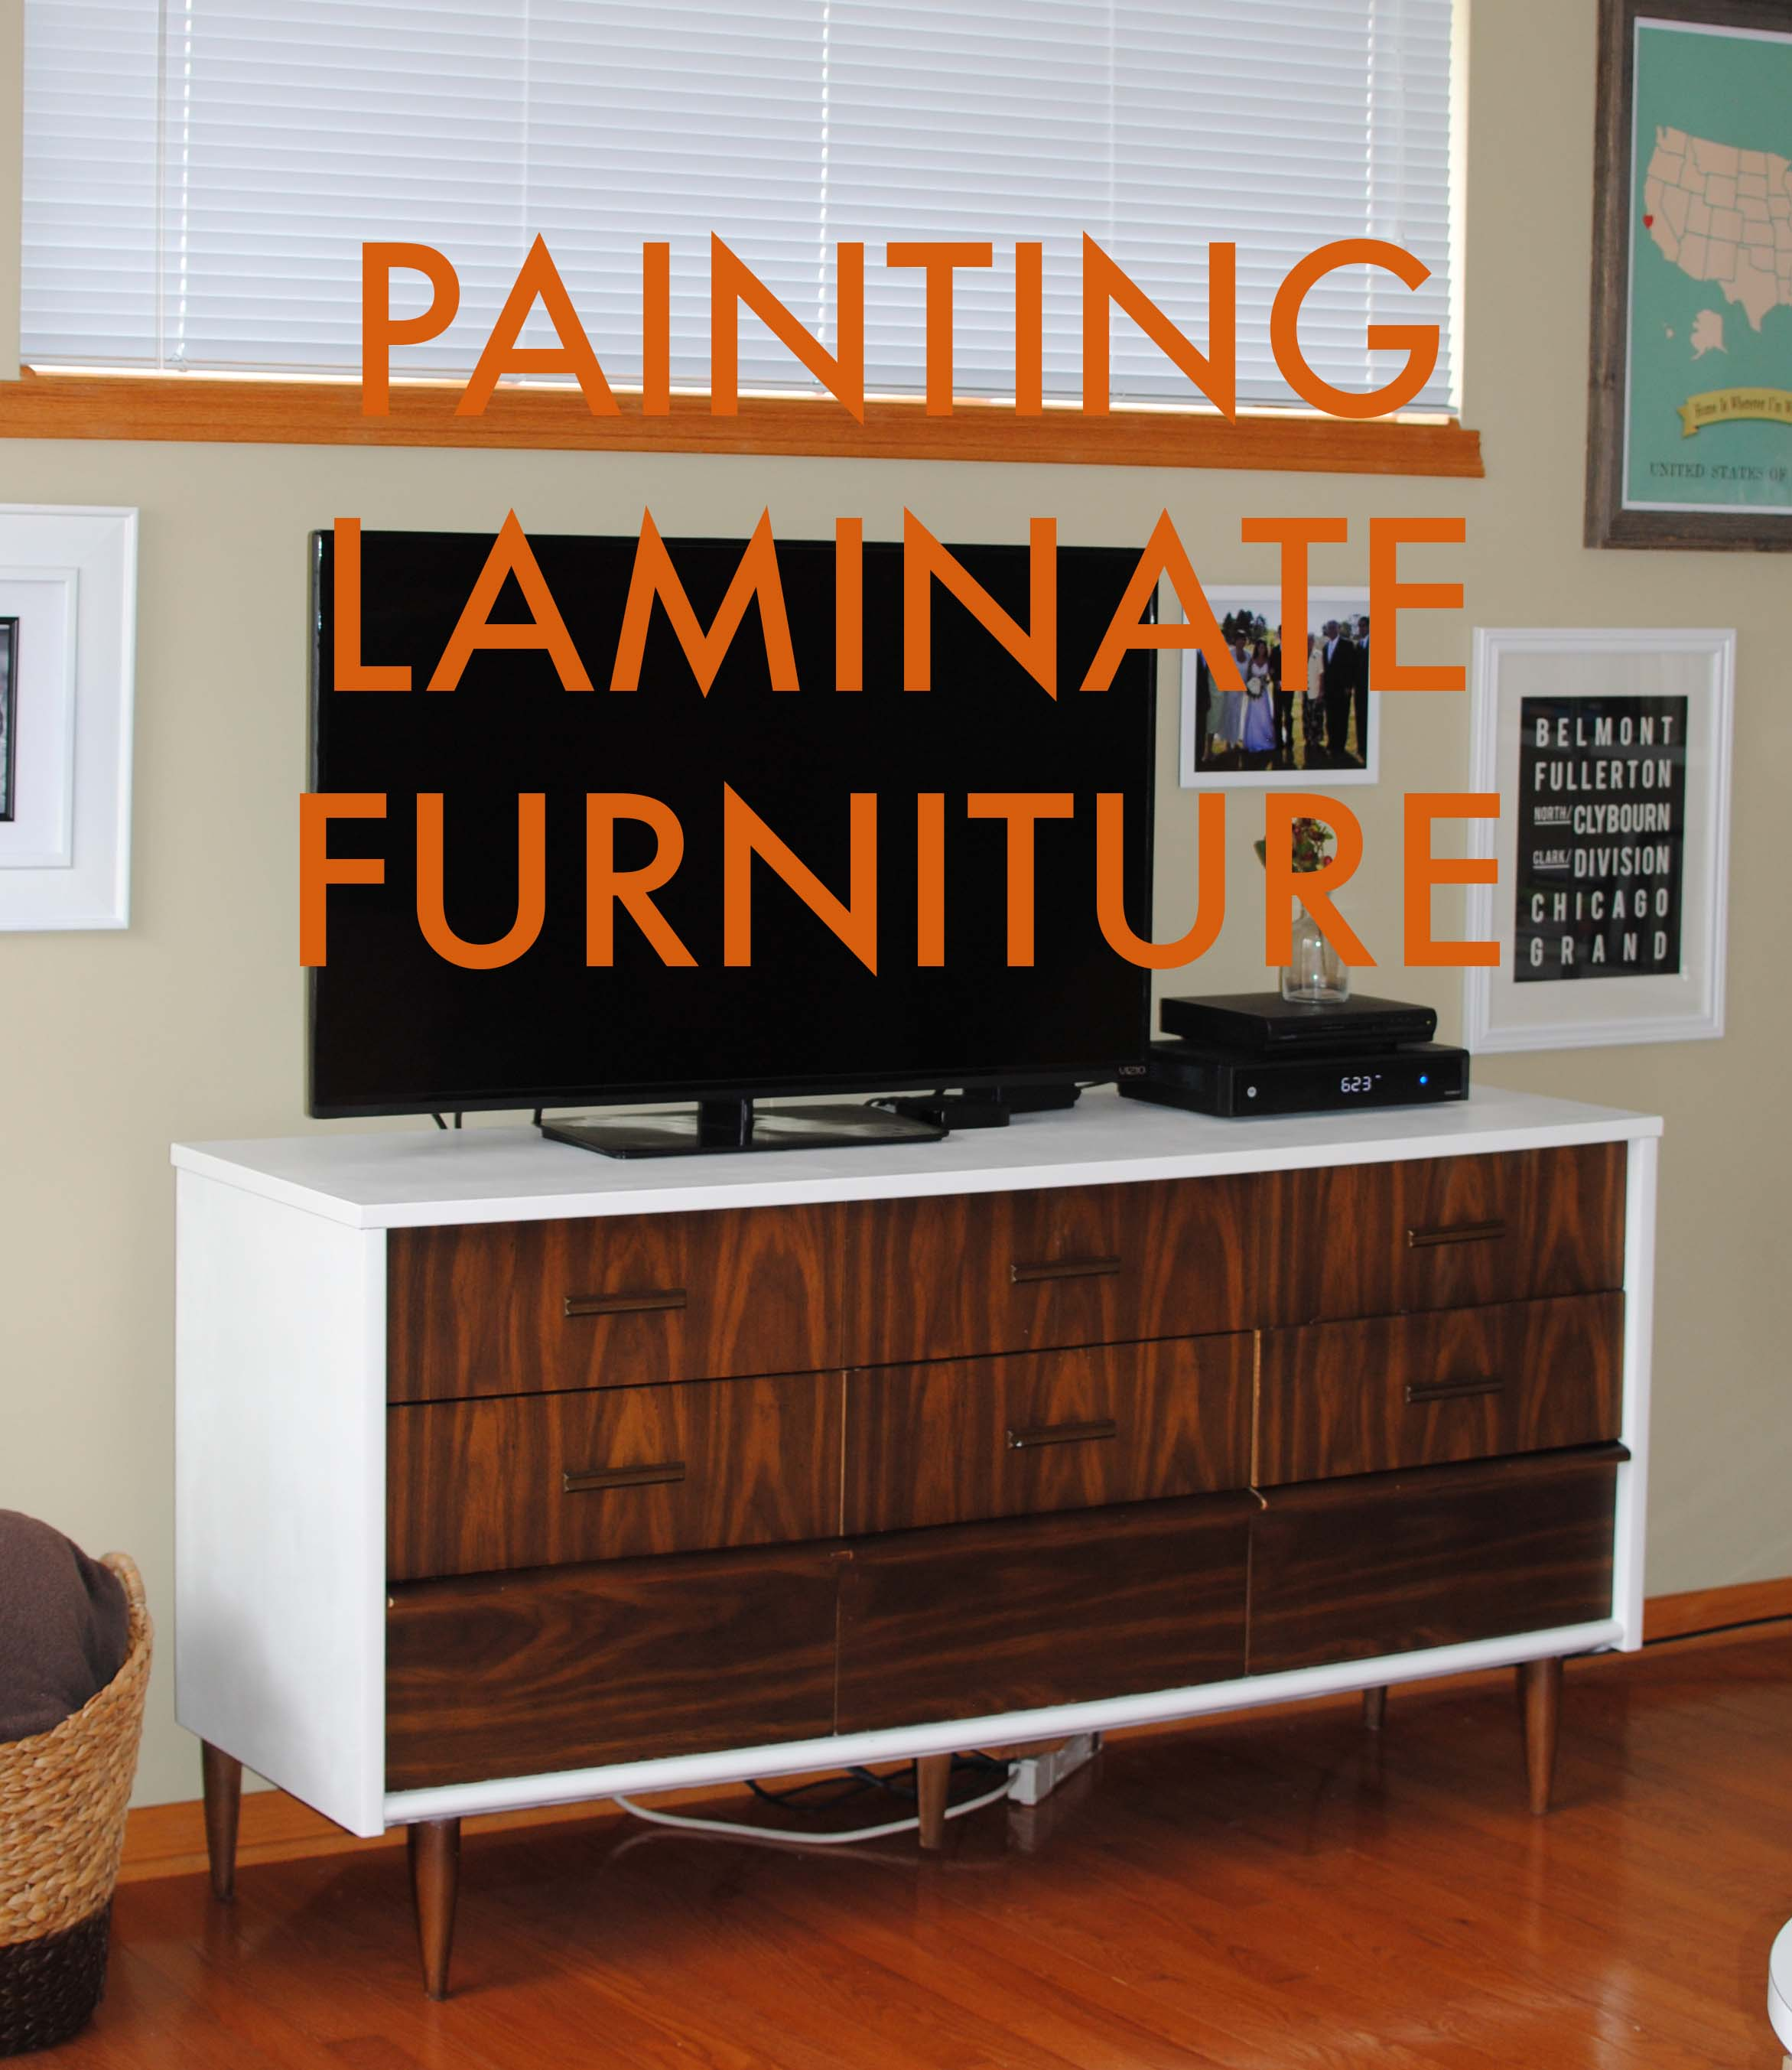 Move Furniture Painting Cool Painting Laminate Furniture  Defining Lovely Decorating Inspiration